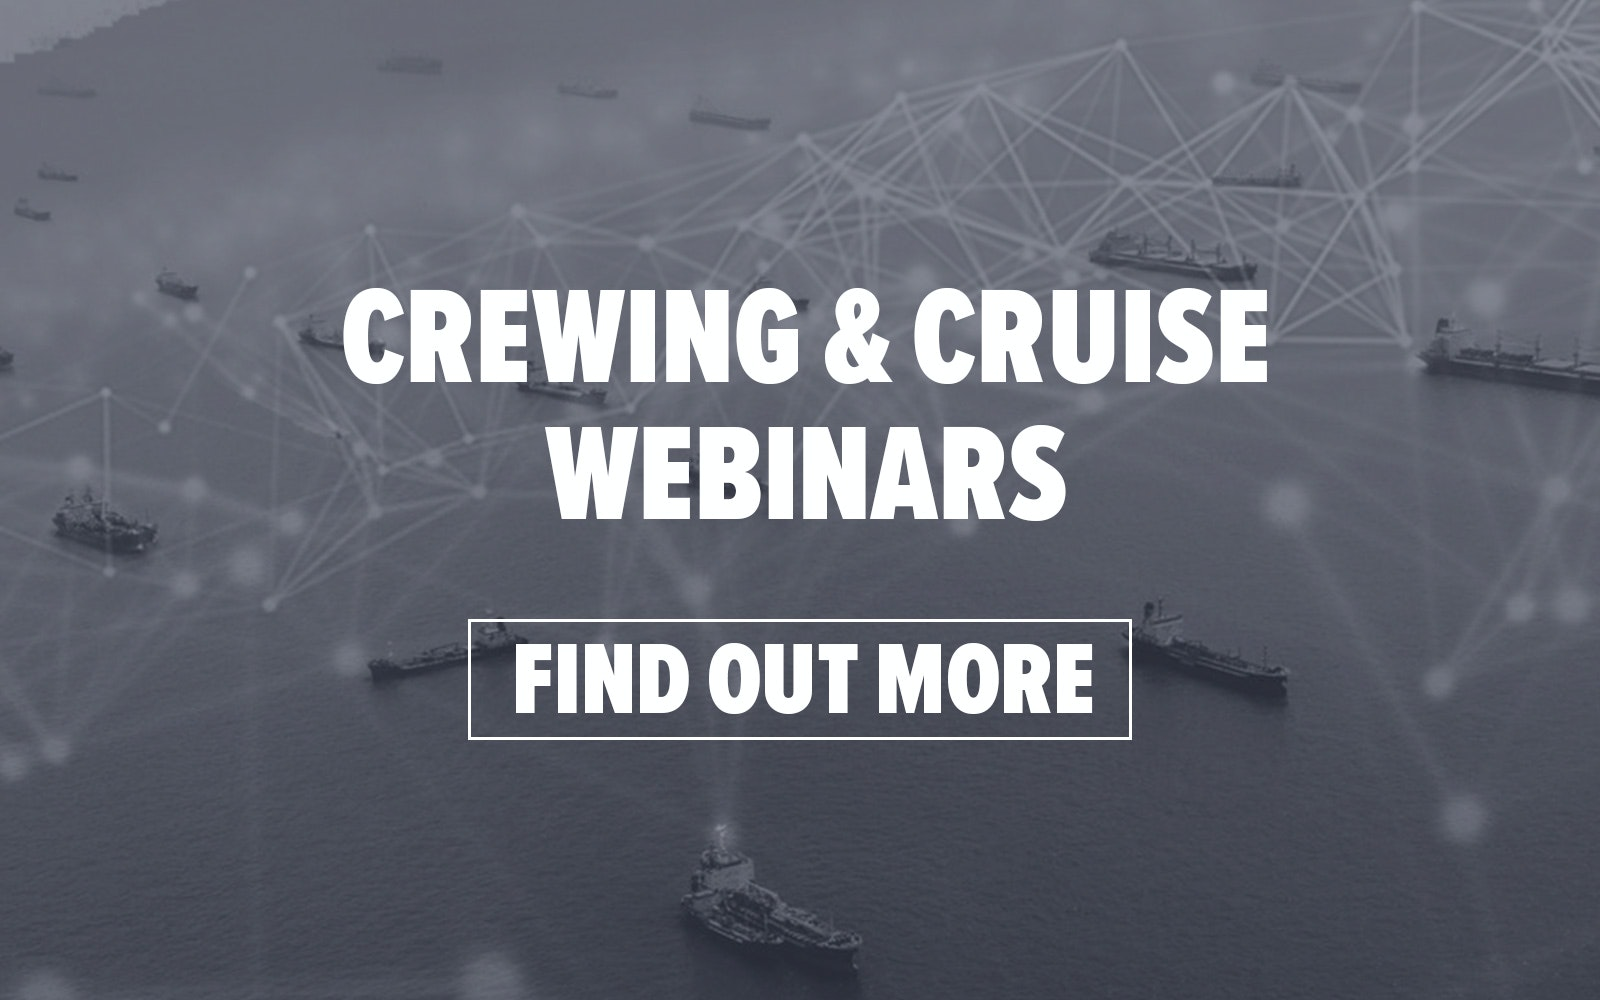 Crewing & cruise webinars